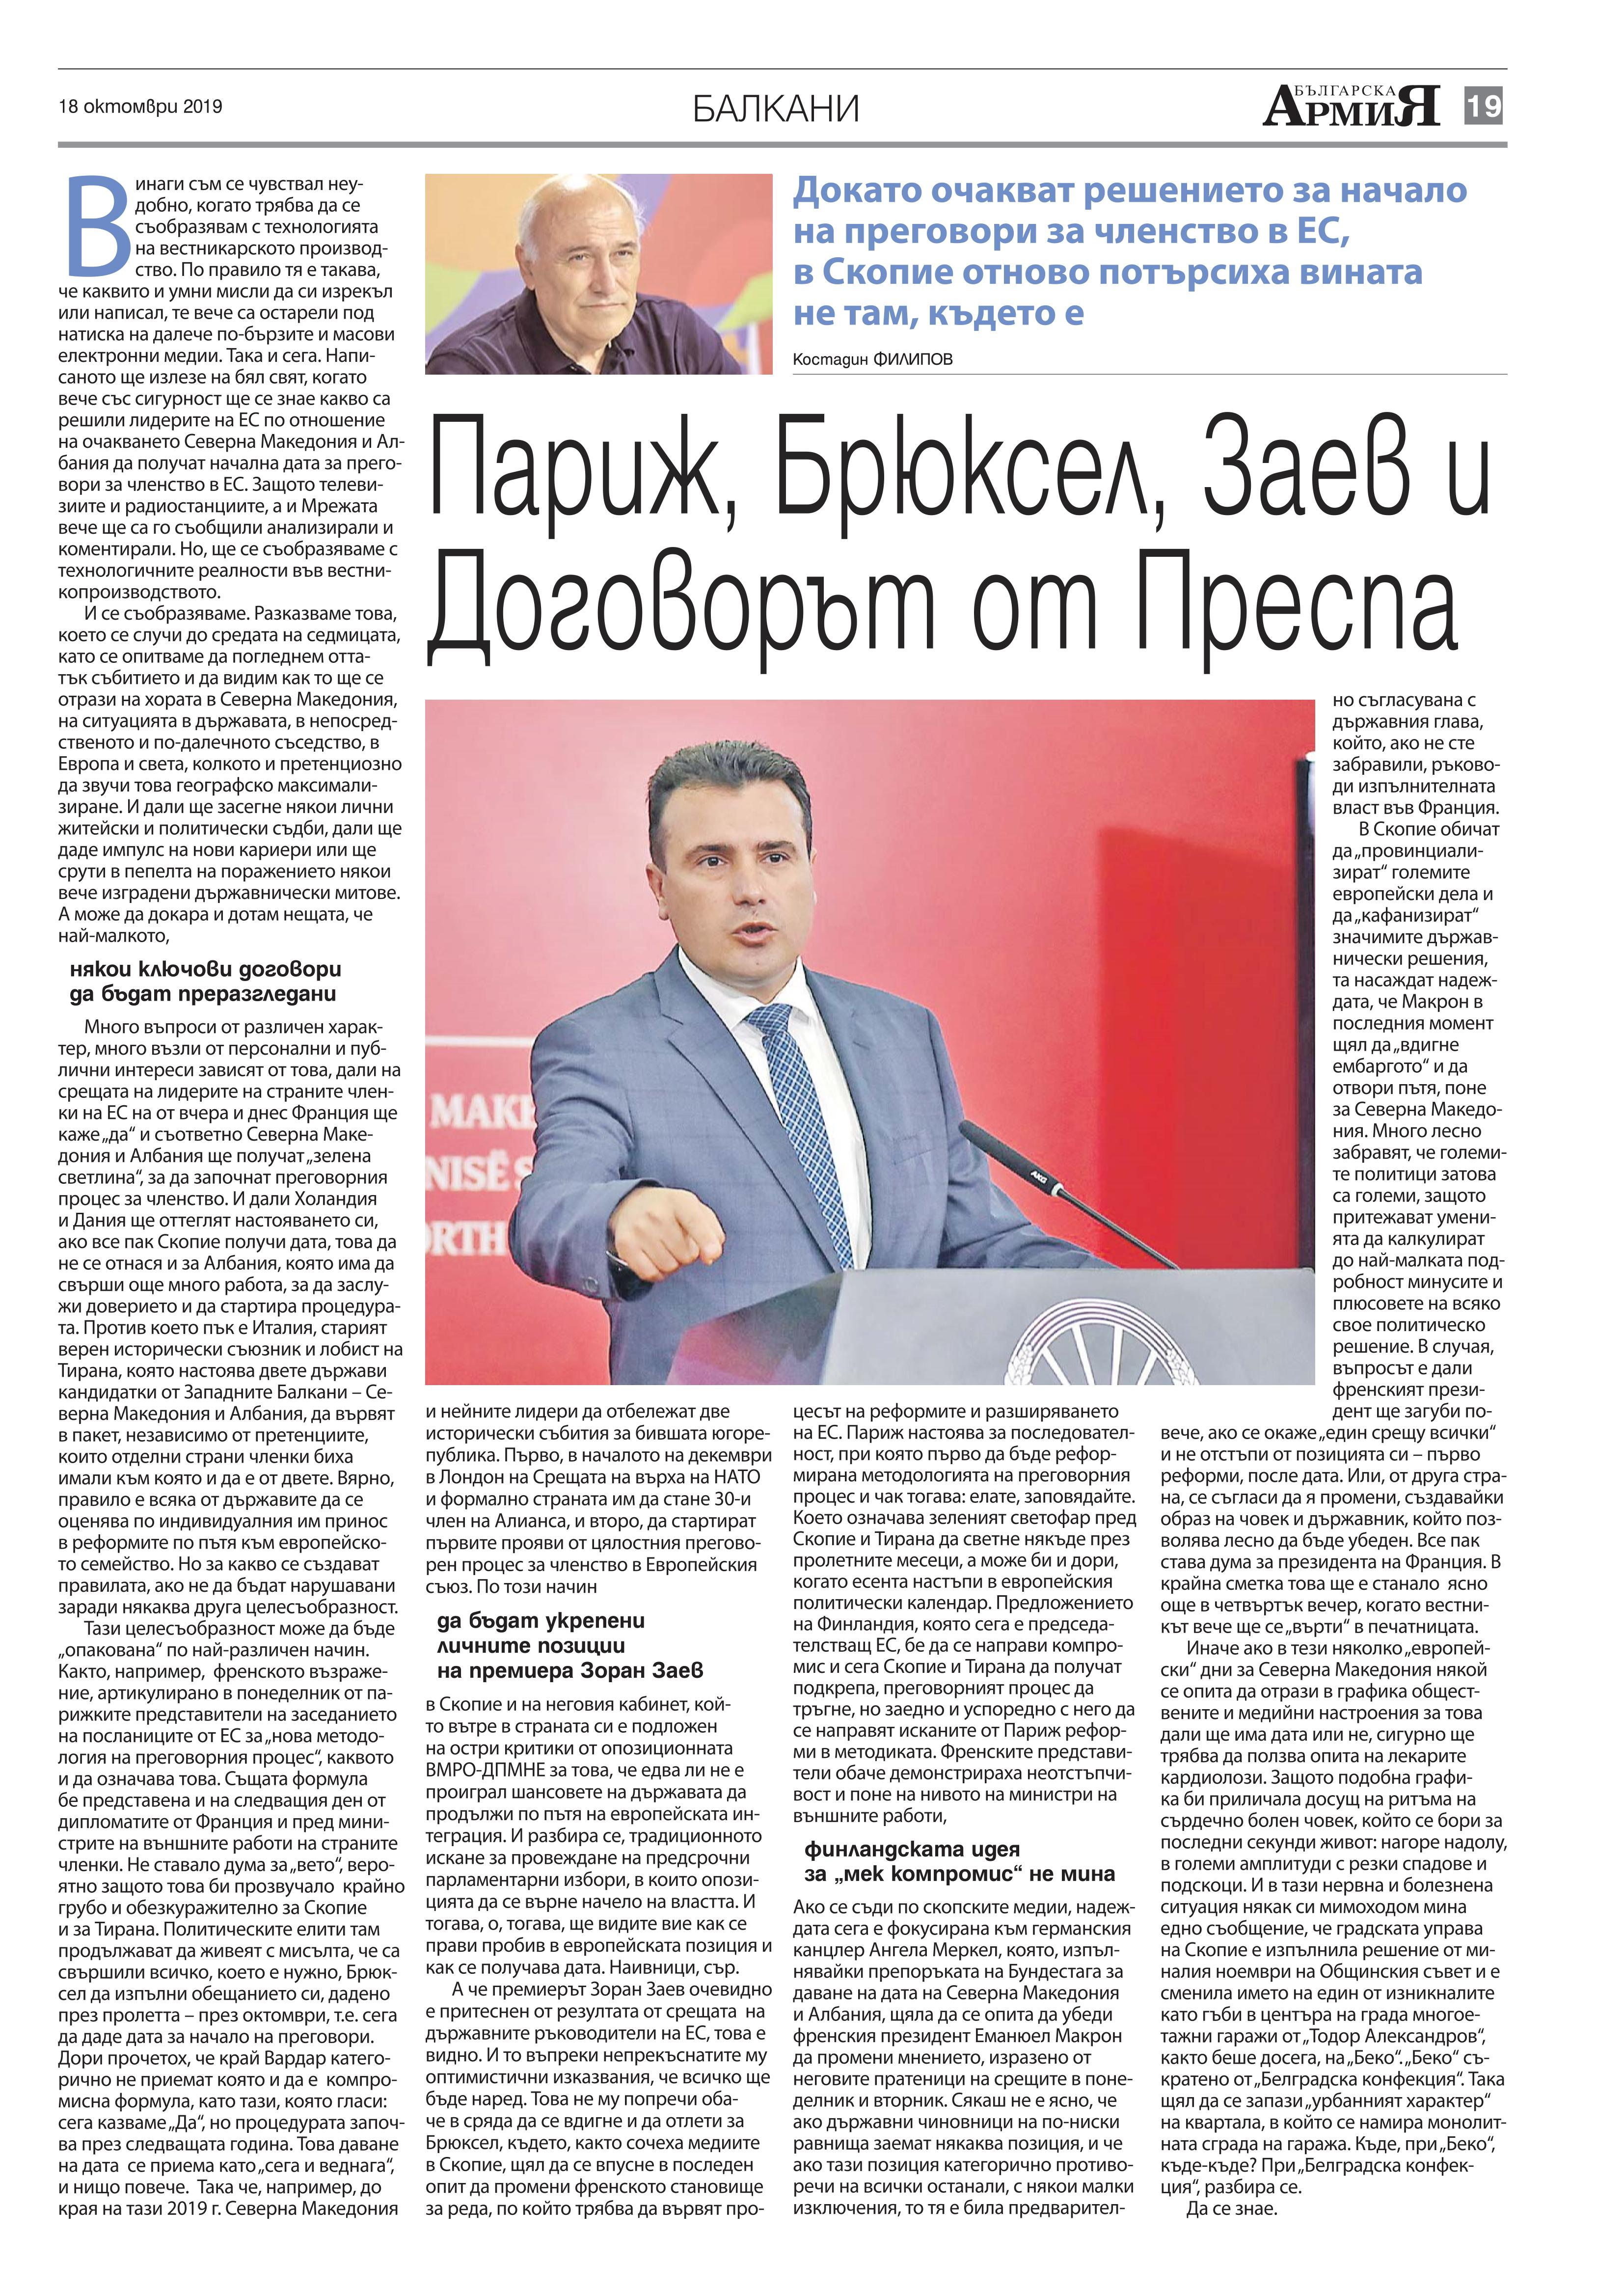 https://armymedia.bg/wp-content/uploads/2015/06/19.page1_-113.jpg